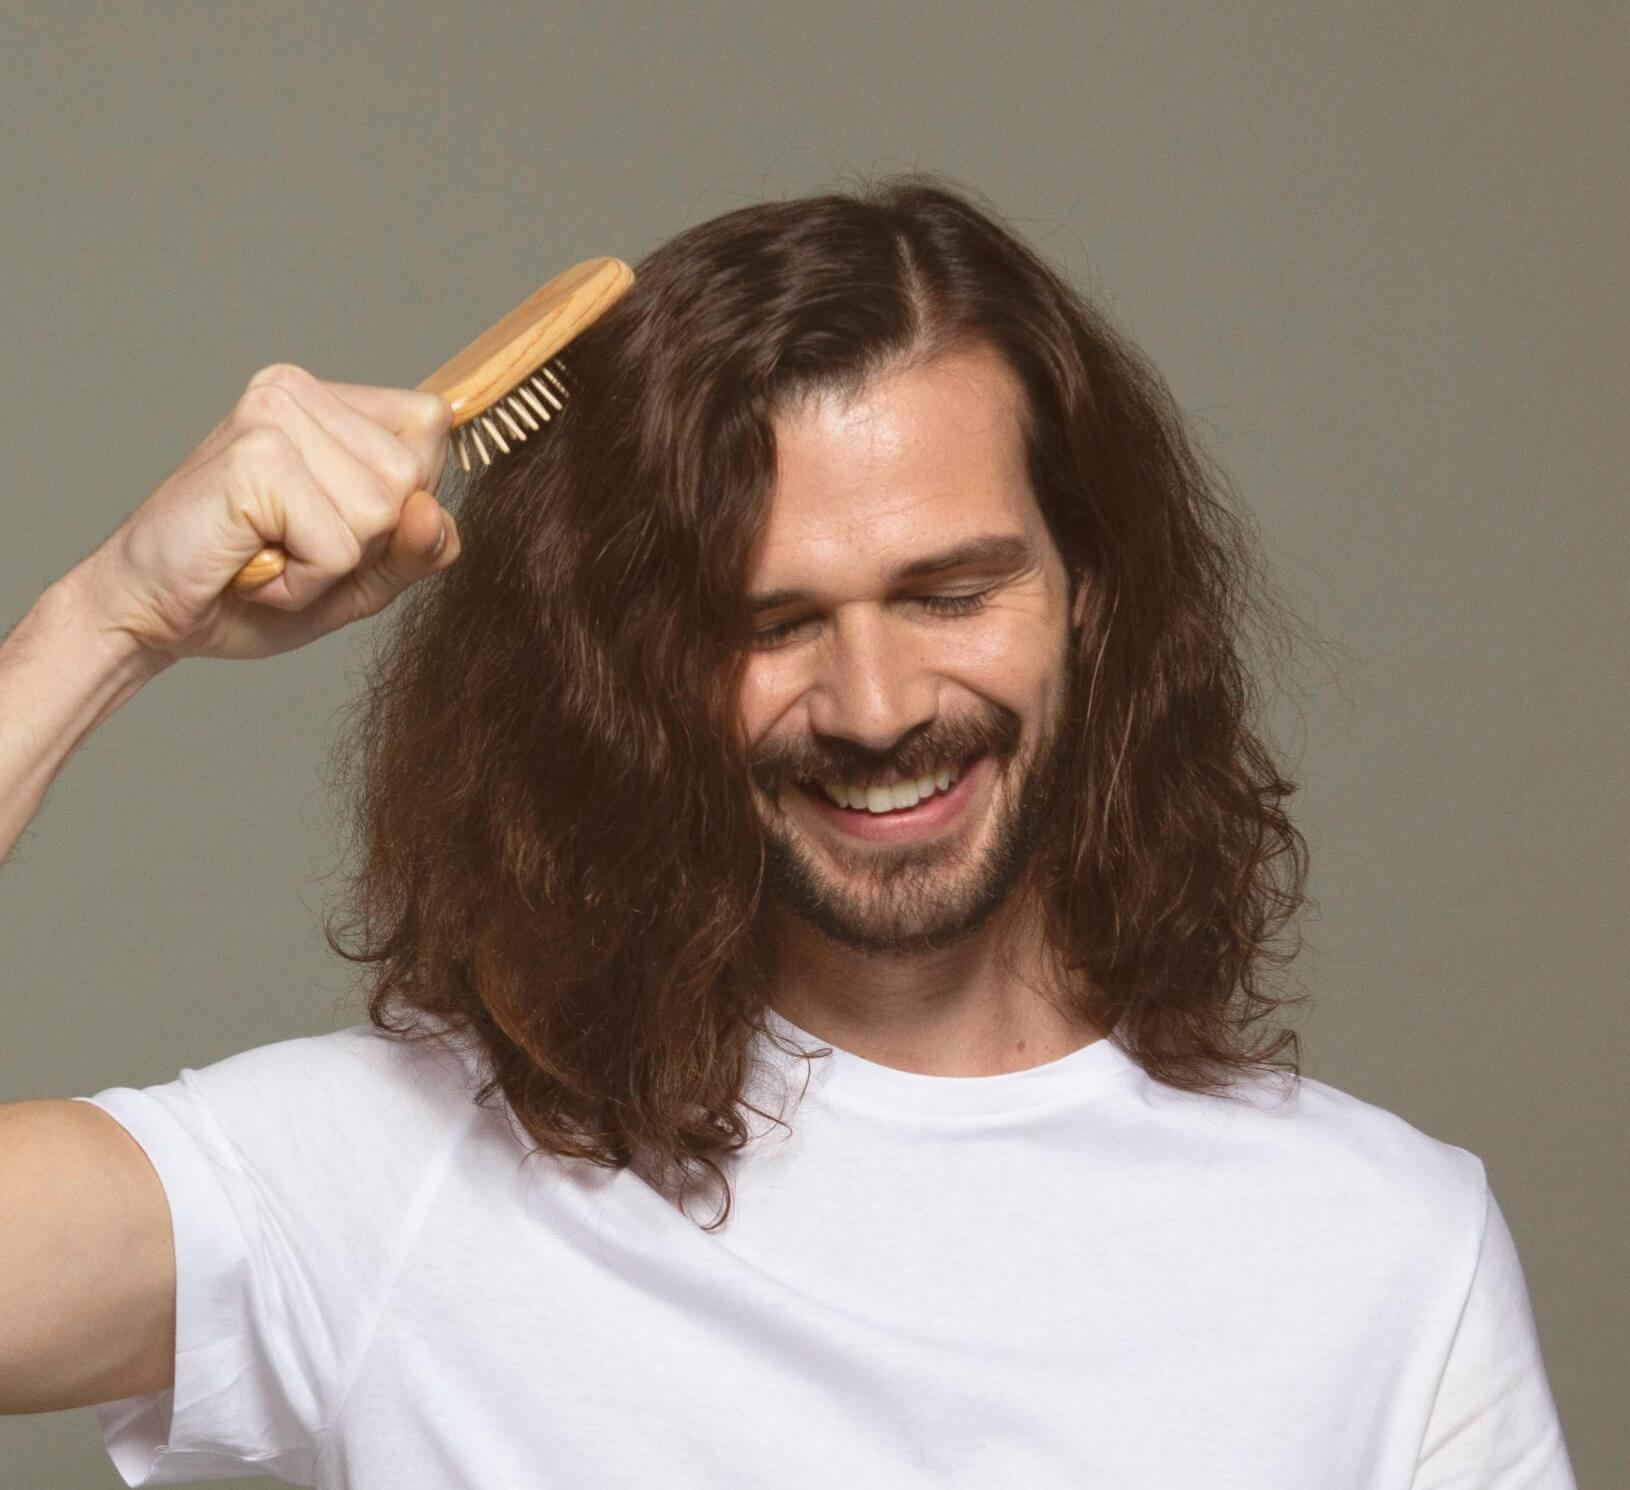 A man in a white t-shirt brushing his shoulder-length, wavy hair